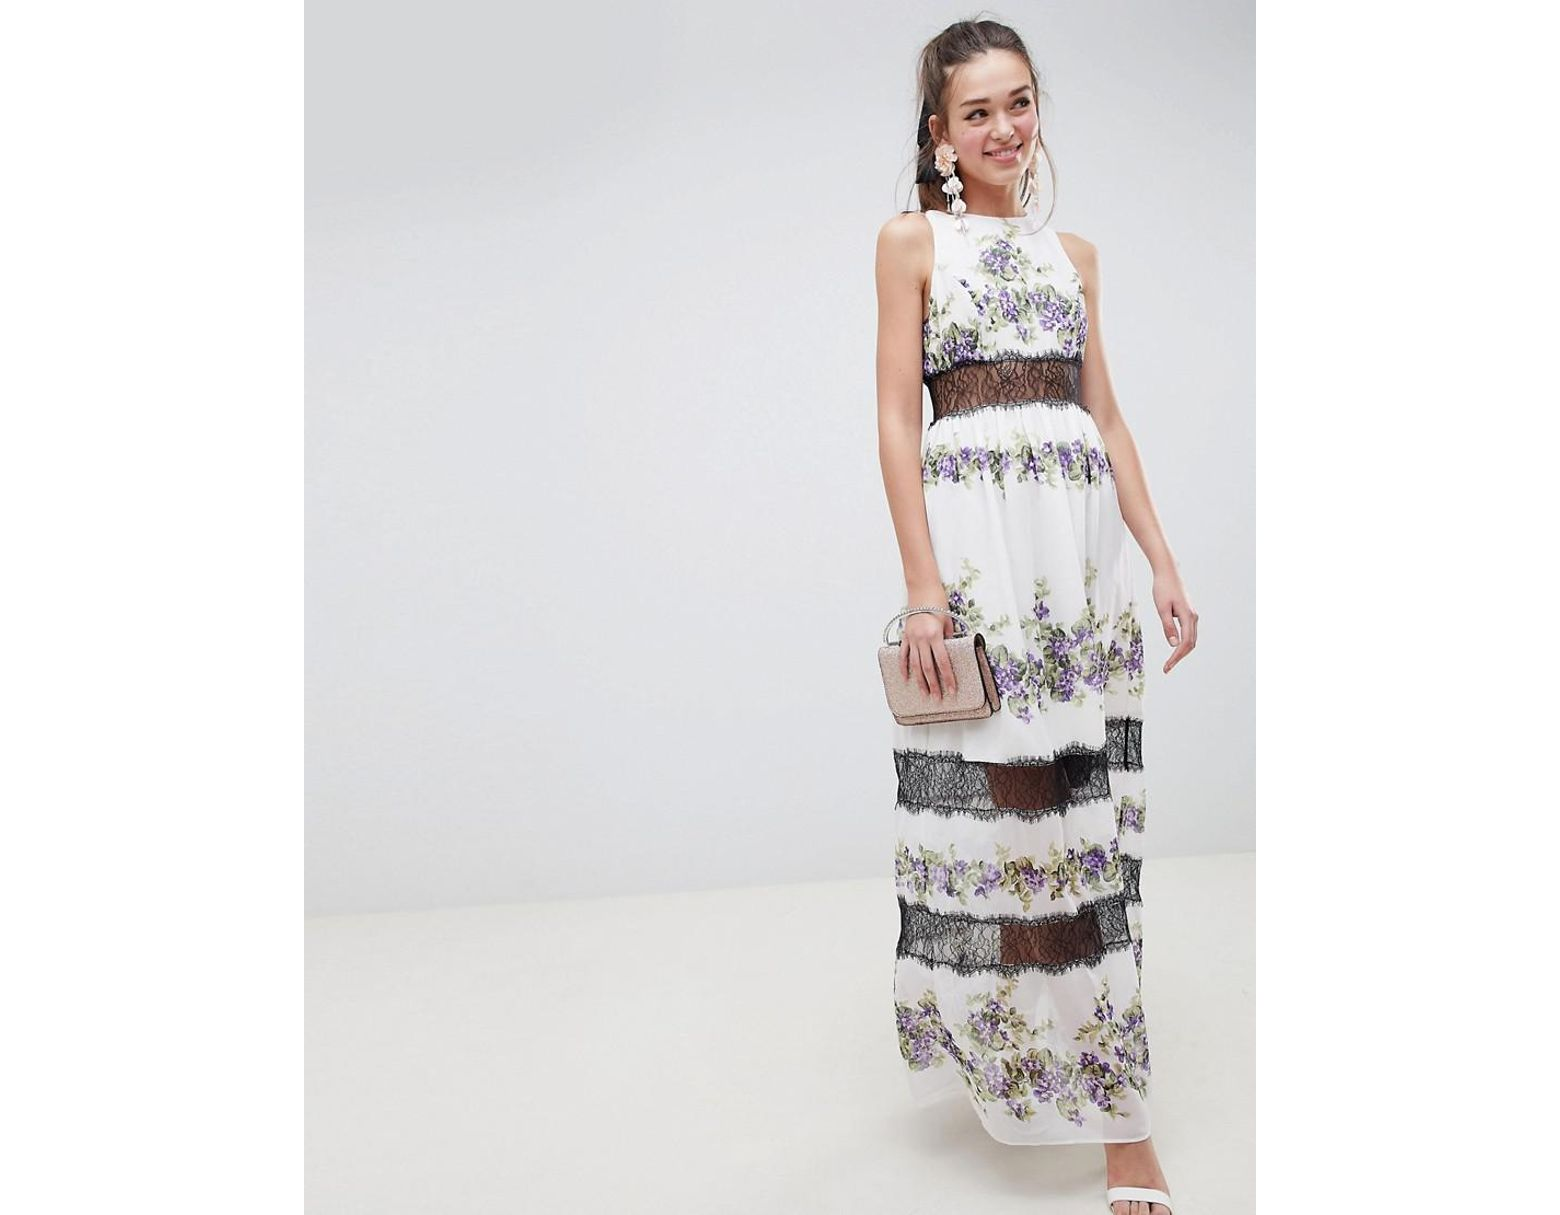 79a137ed41c Lyst - ASOS Lace Panel Maxi Dress In Vintage Floral